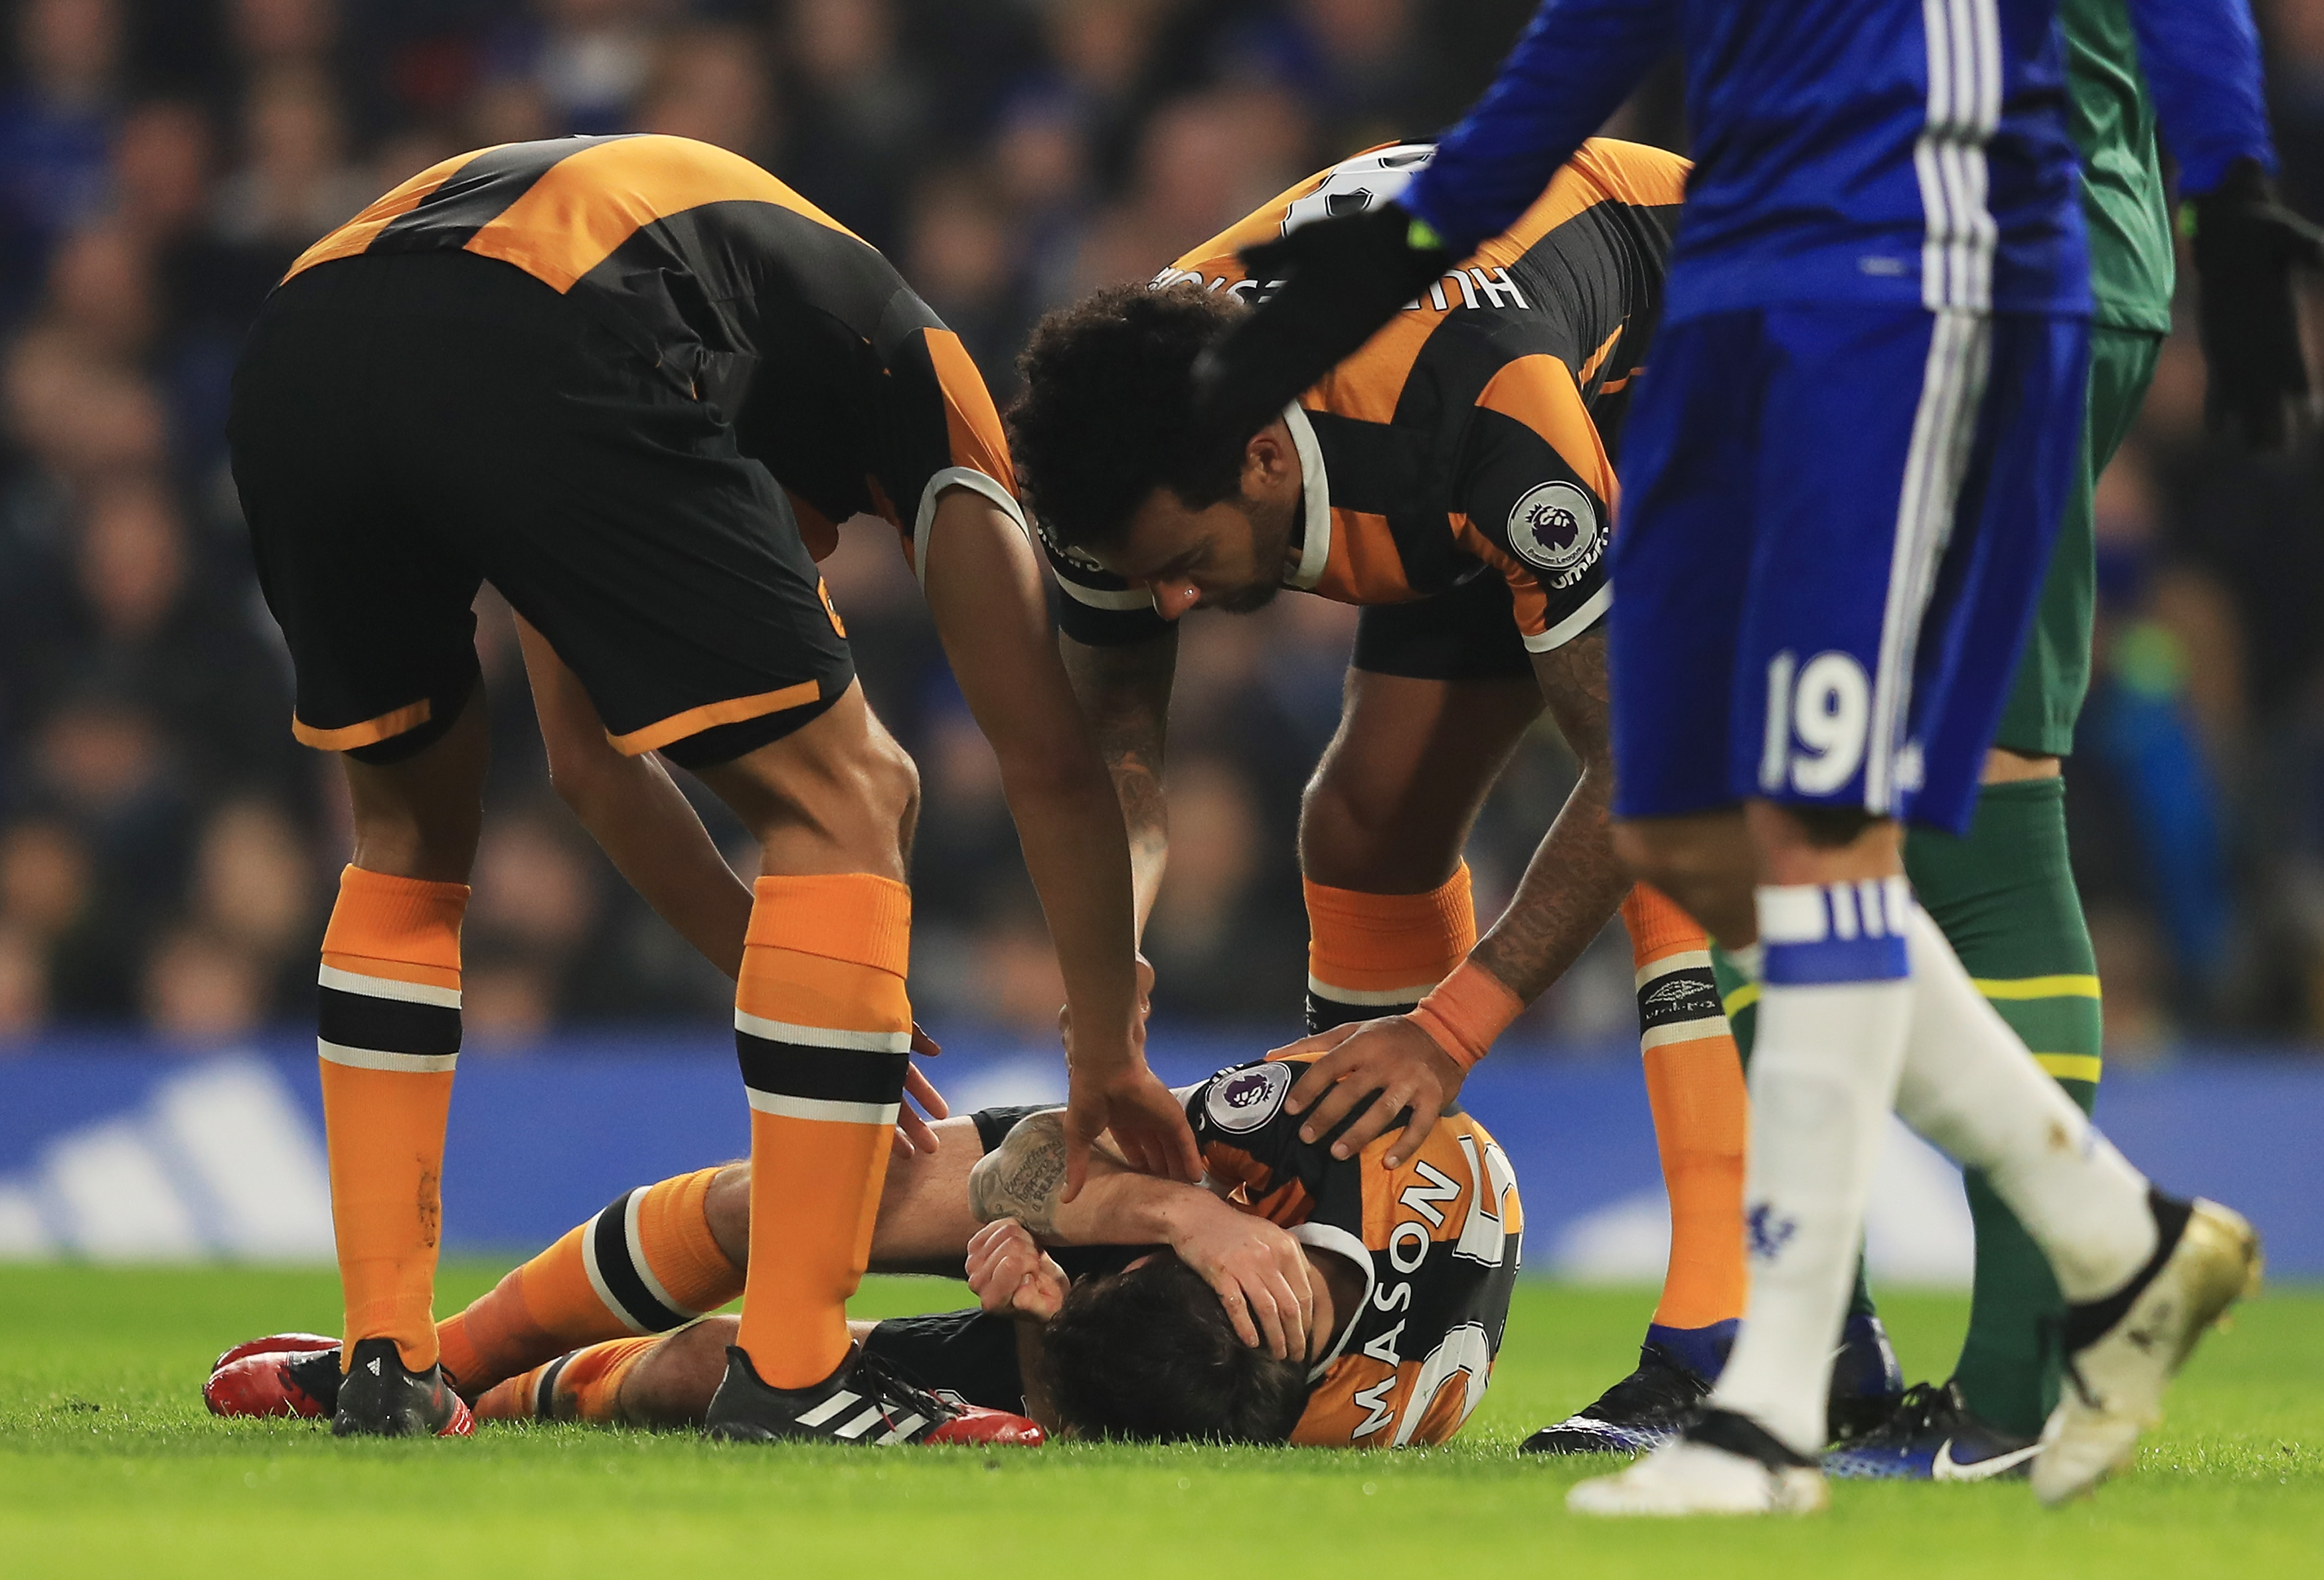 Chelsea captain John Terry posts message of support to Ryan Mason after sickening head injury